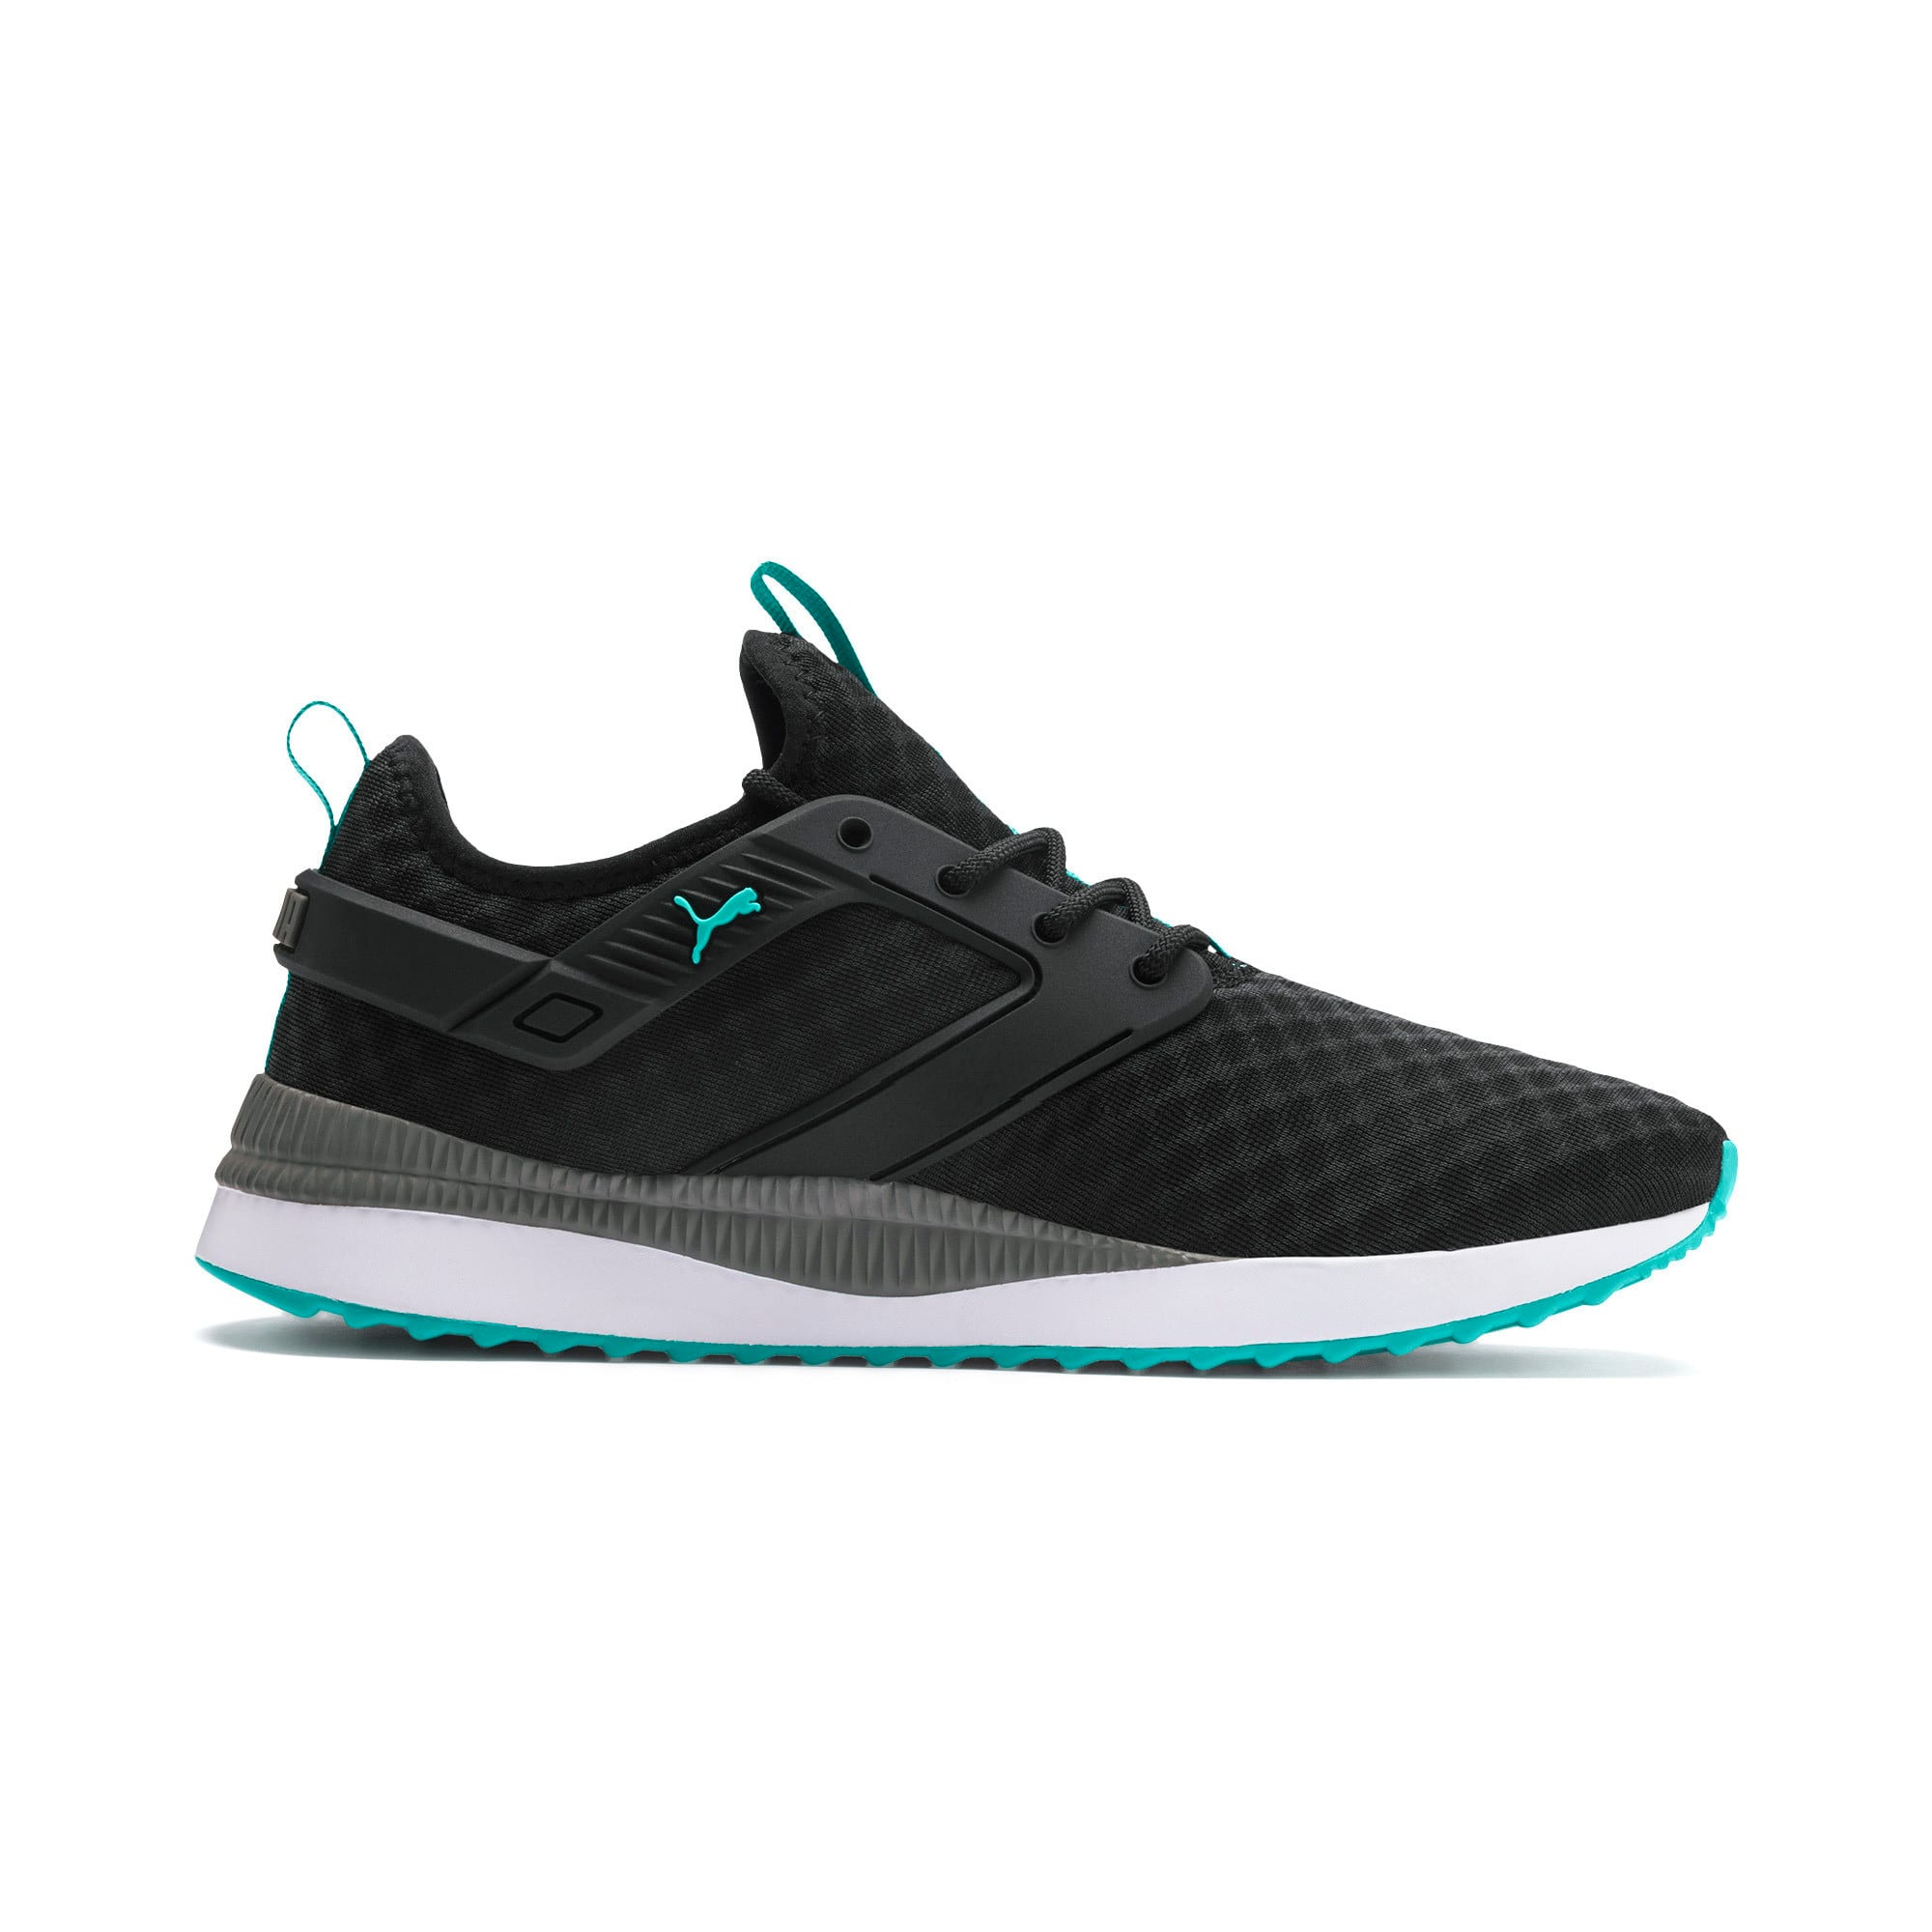 Thumbnail 6 of Pacer Next Excel Core Sneakers, Puma Black-Blue Turquoise, medium